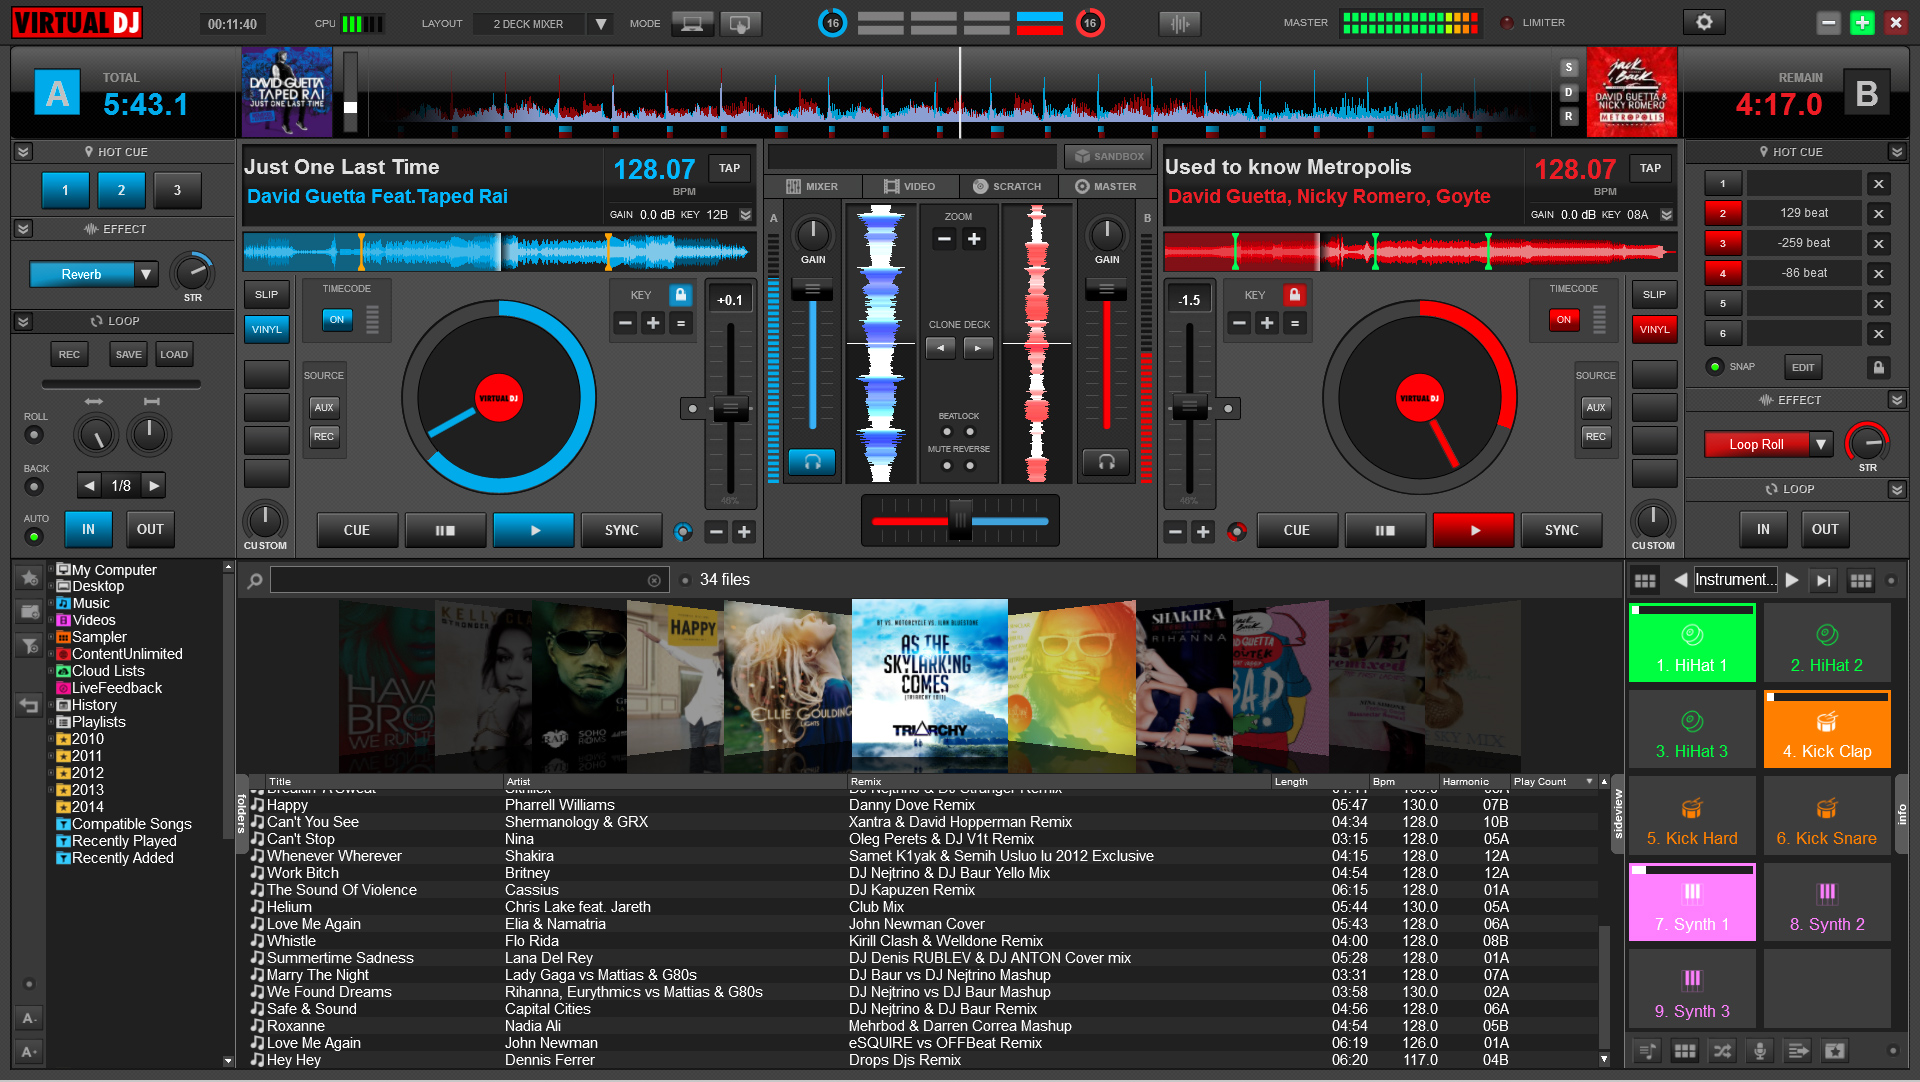 Download virtual dj pro le free for mac babysitestory's blog.